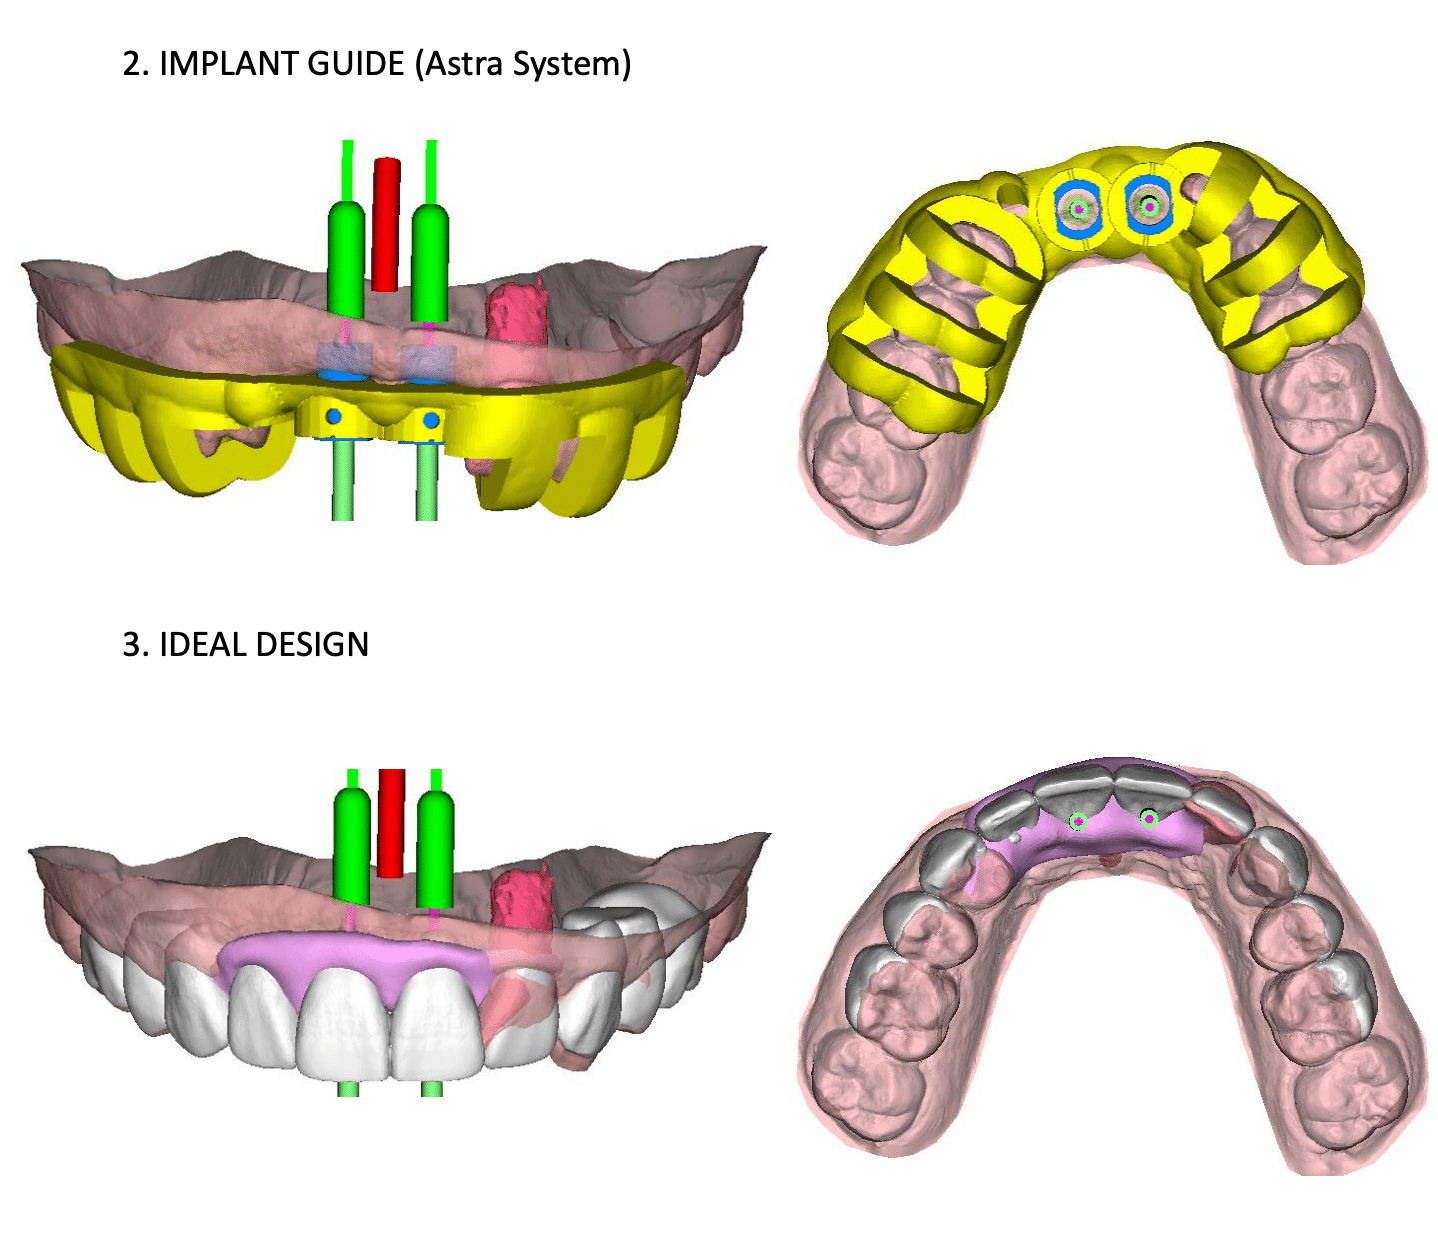 digital illustration showing computer-guided implant placement